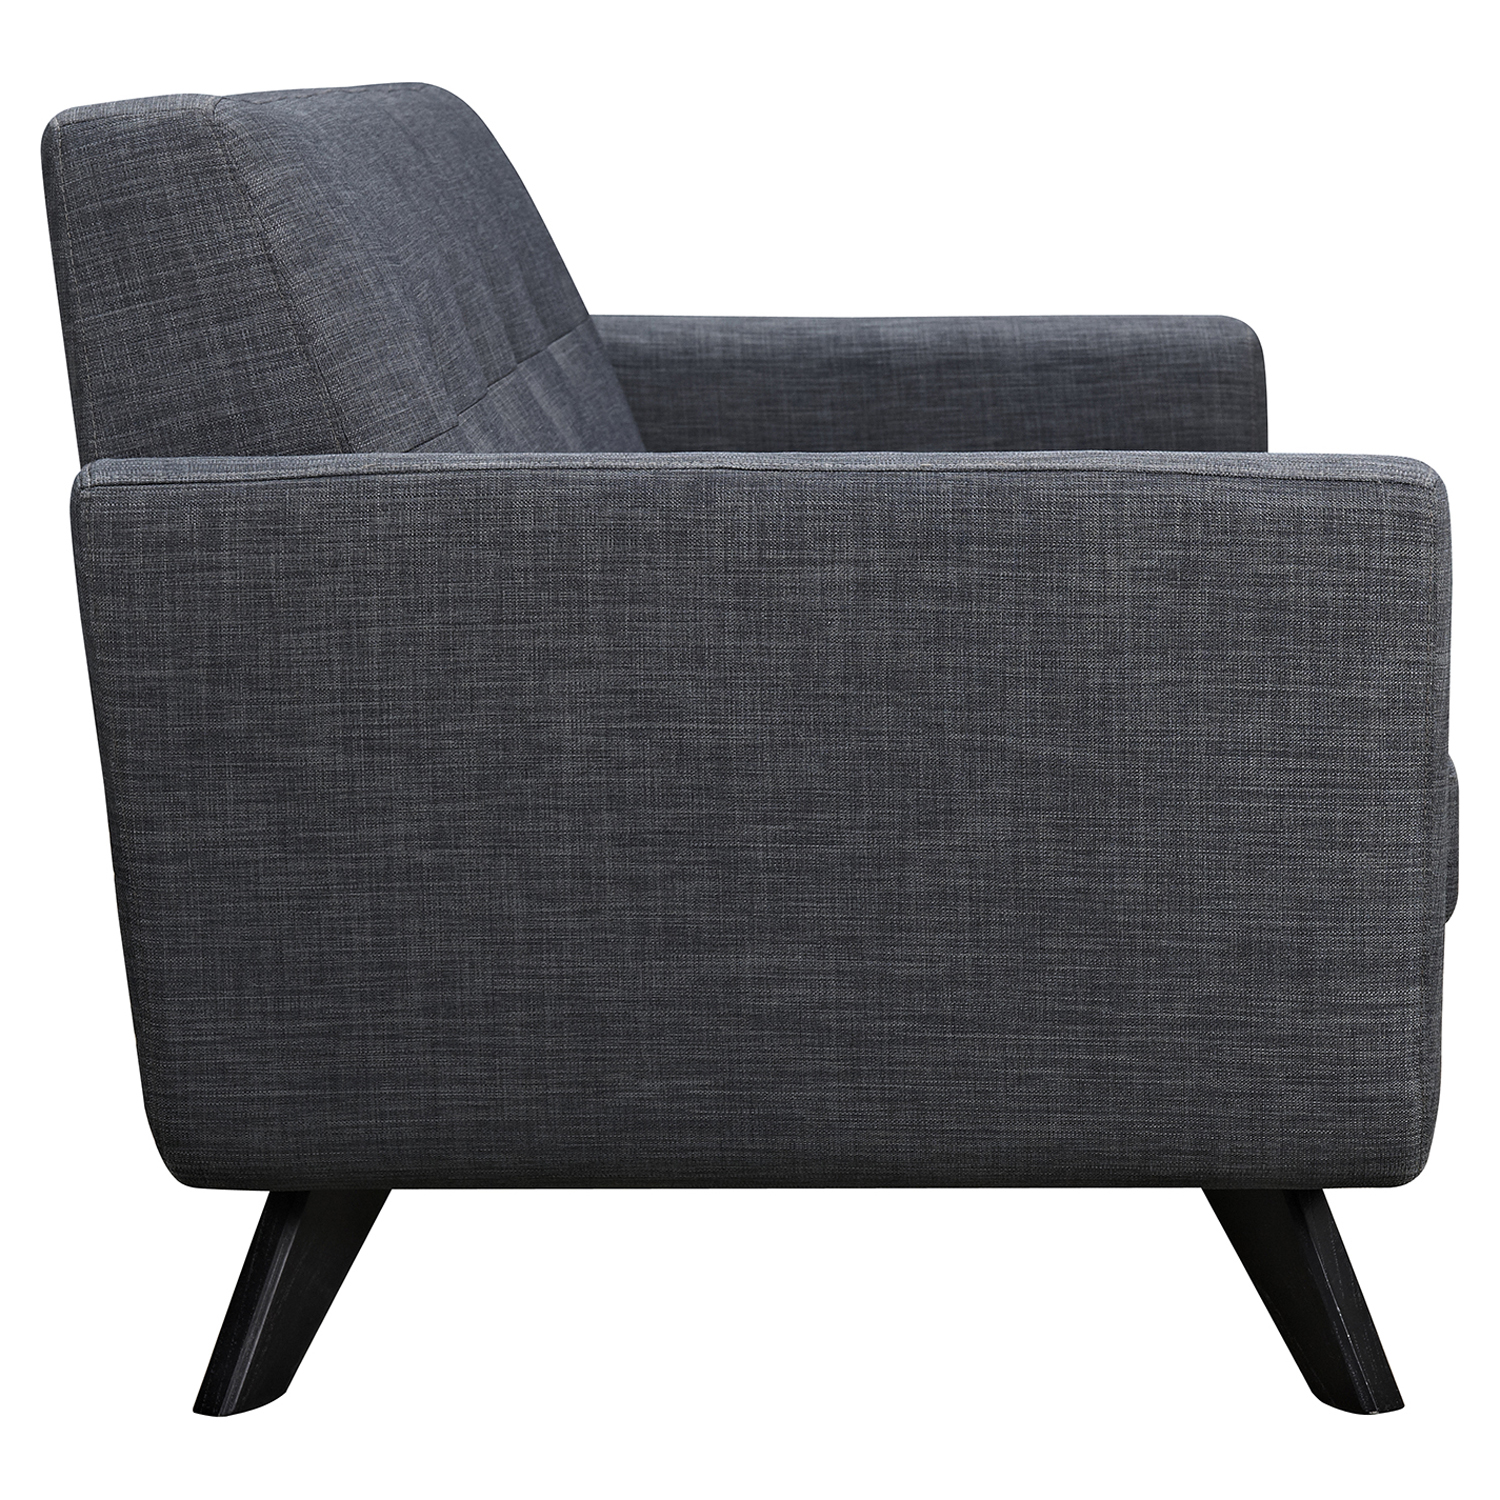 Dania Tufted Upholstery Sofa - Charcoal Gray - NYEK-224471